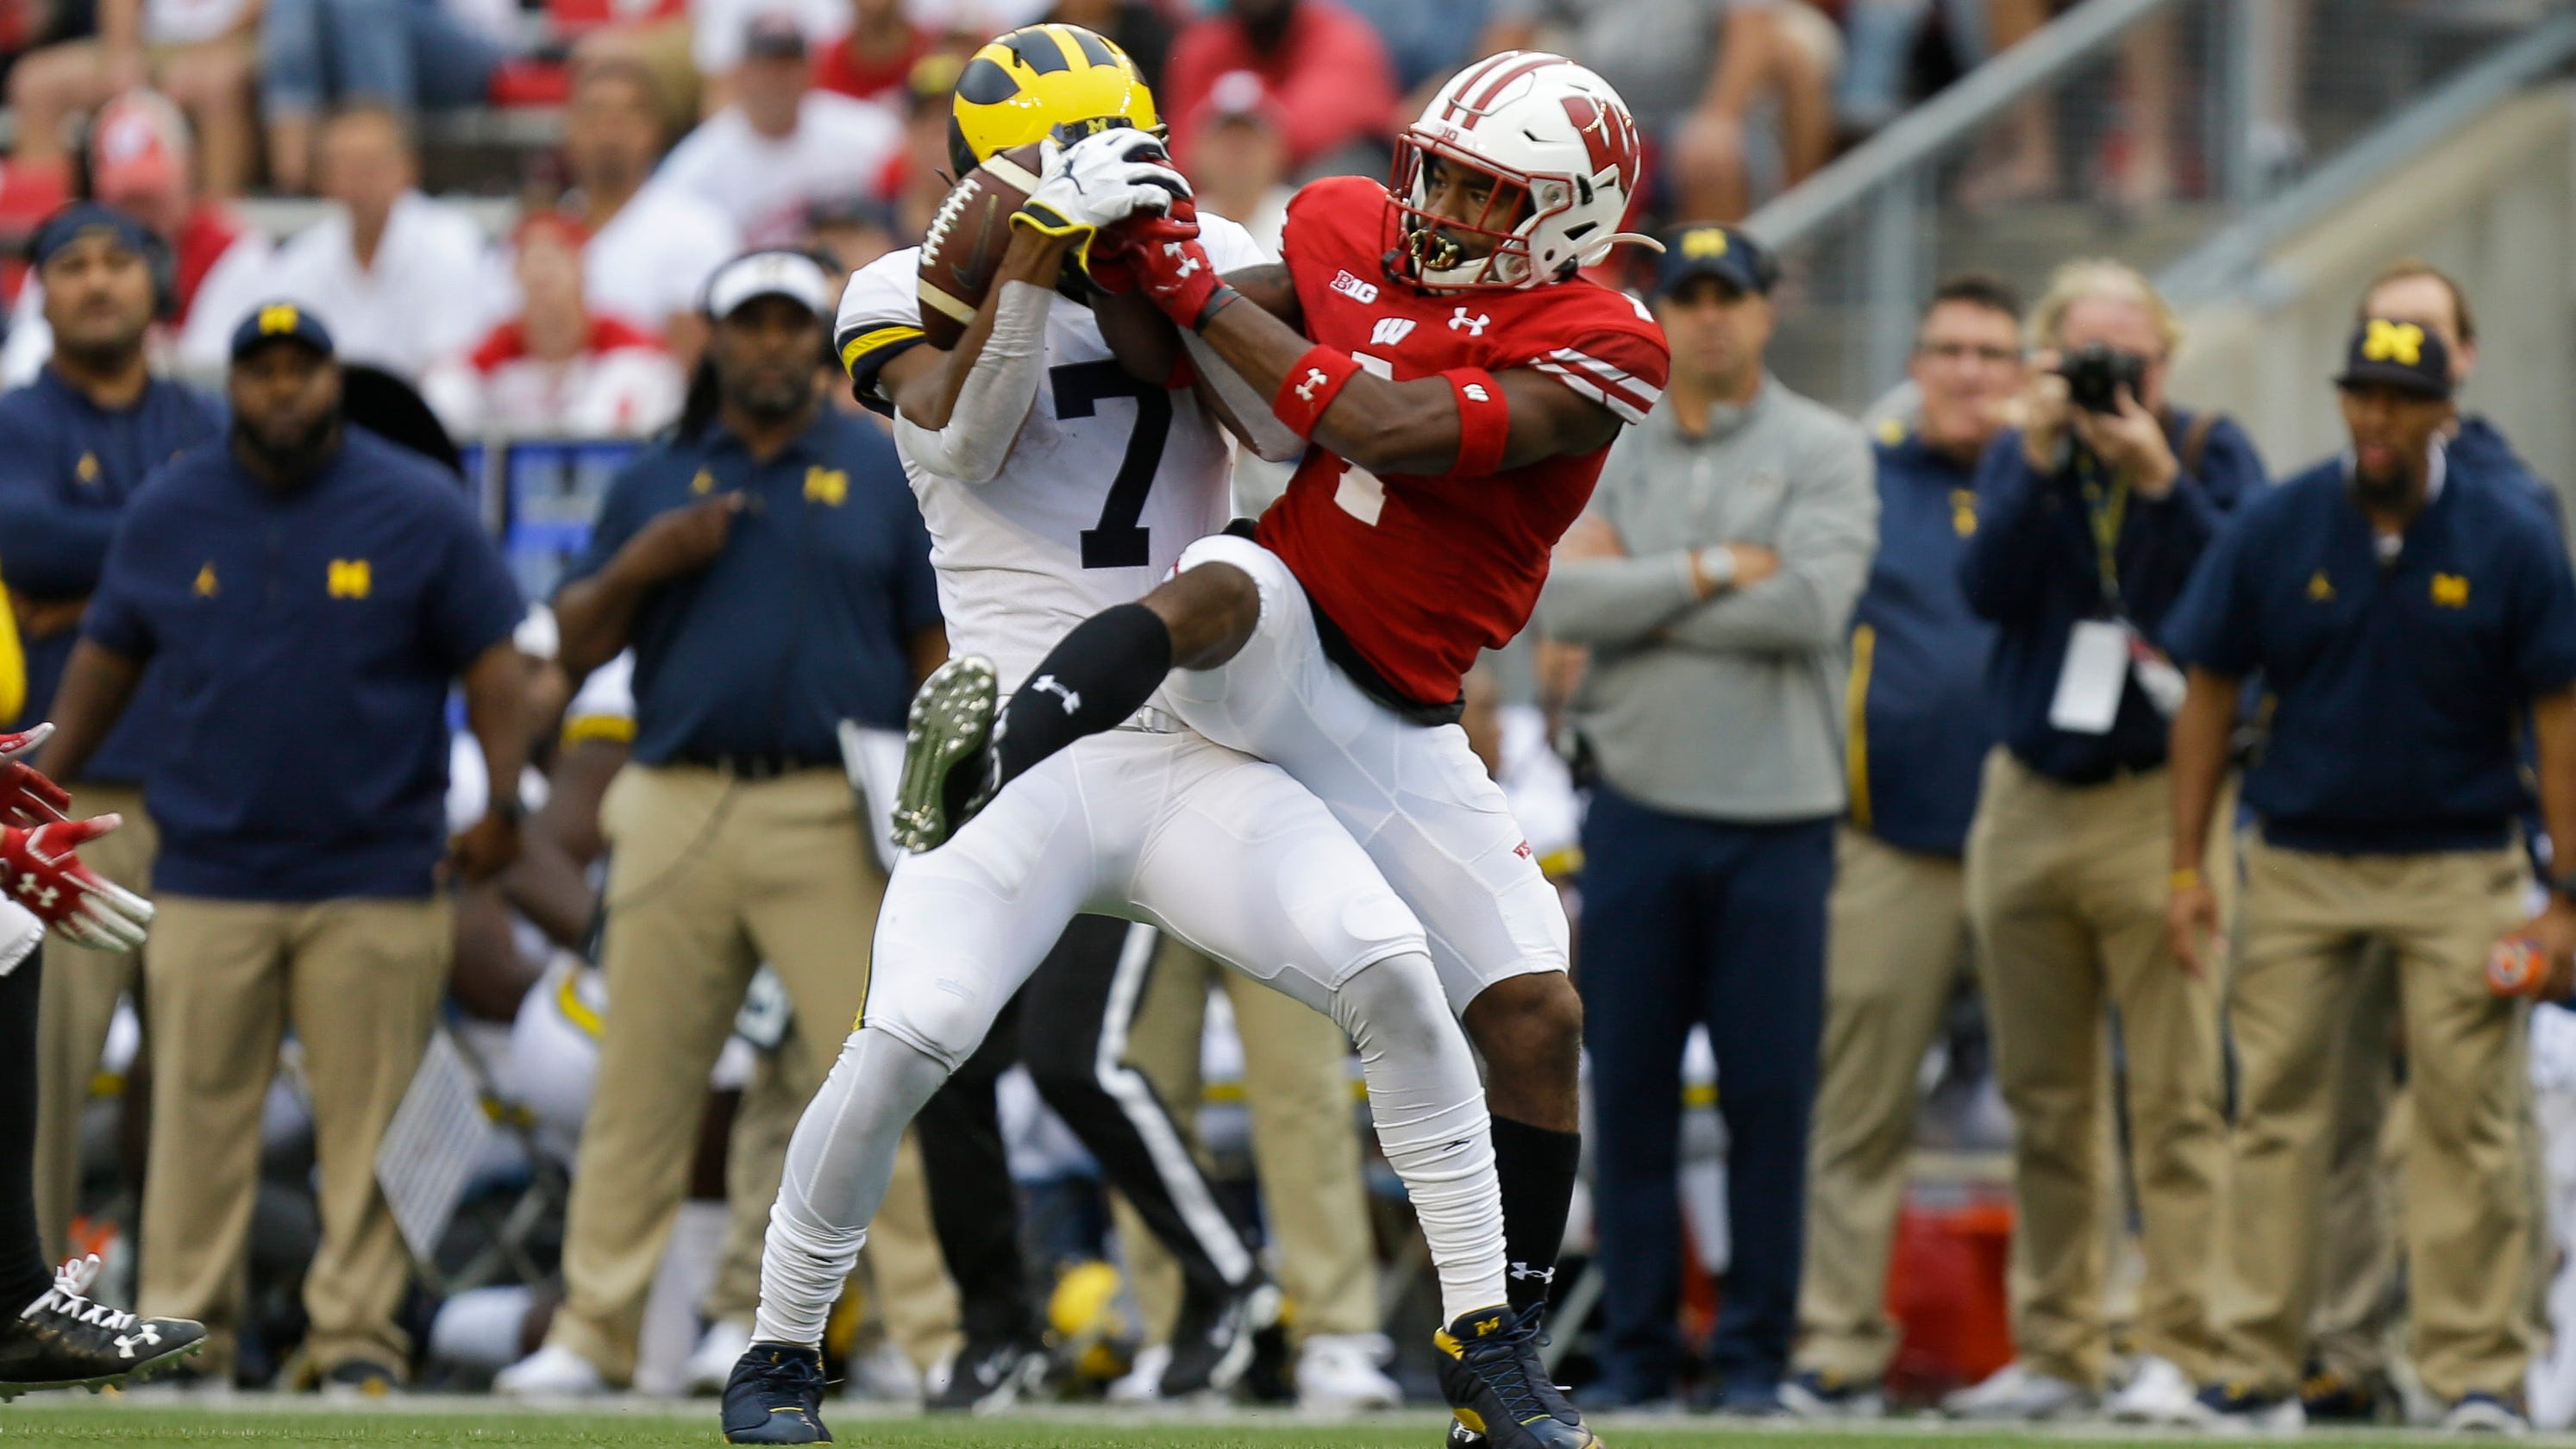 Michigan showed it is a pretender, while Wisconsin joined the College Football Playoff contenders